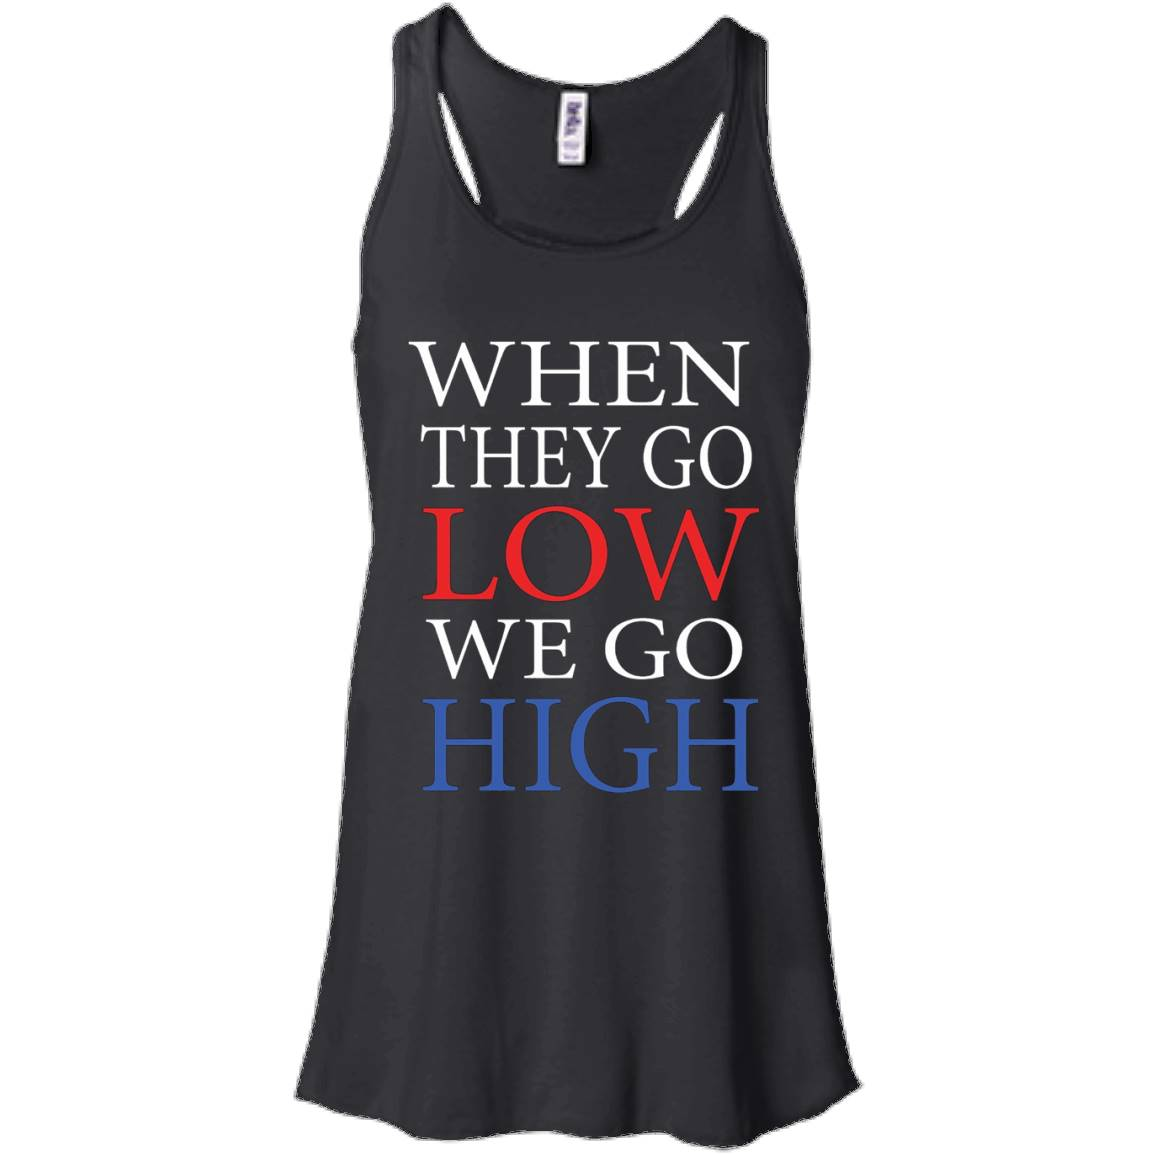 Quotes by Michelle Obama- When they go low, we go high – Women Tank